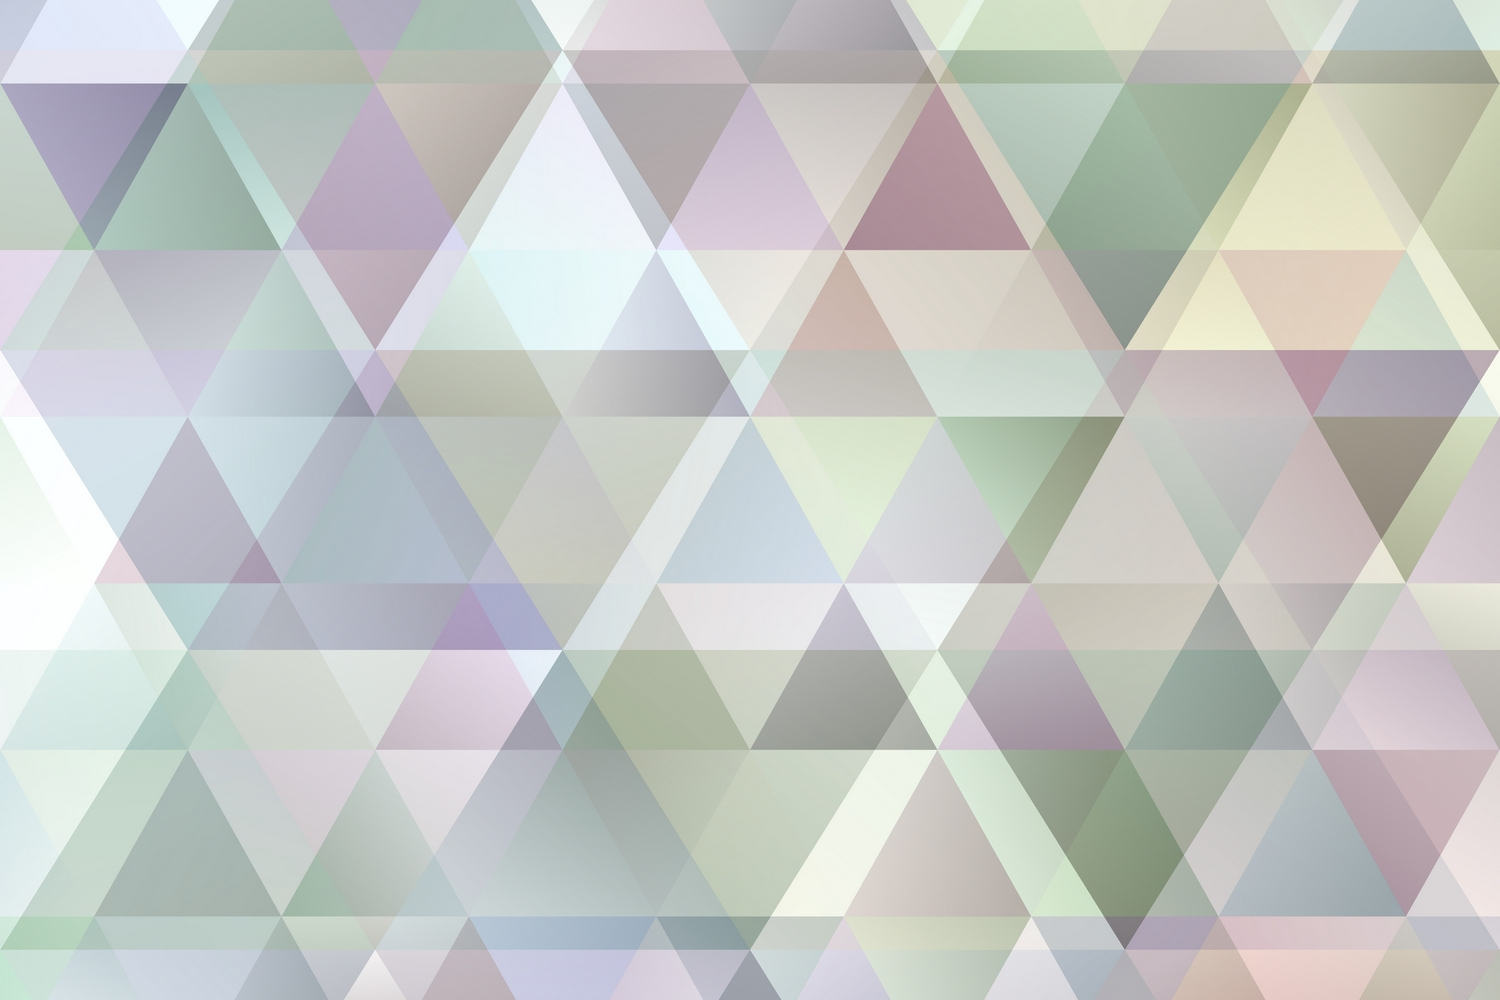 24 Gradient Polygon Backgrounds AI, EPS, JPG 5000x5000 example image 22